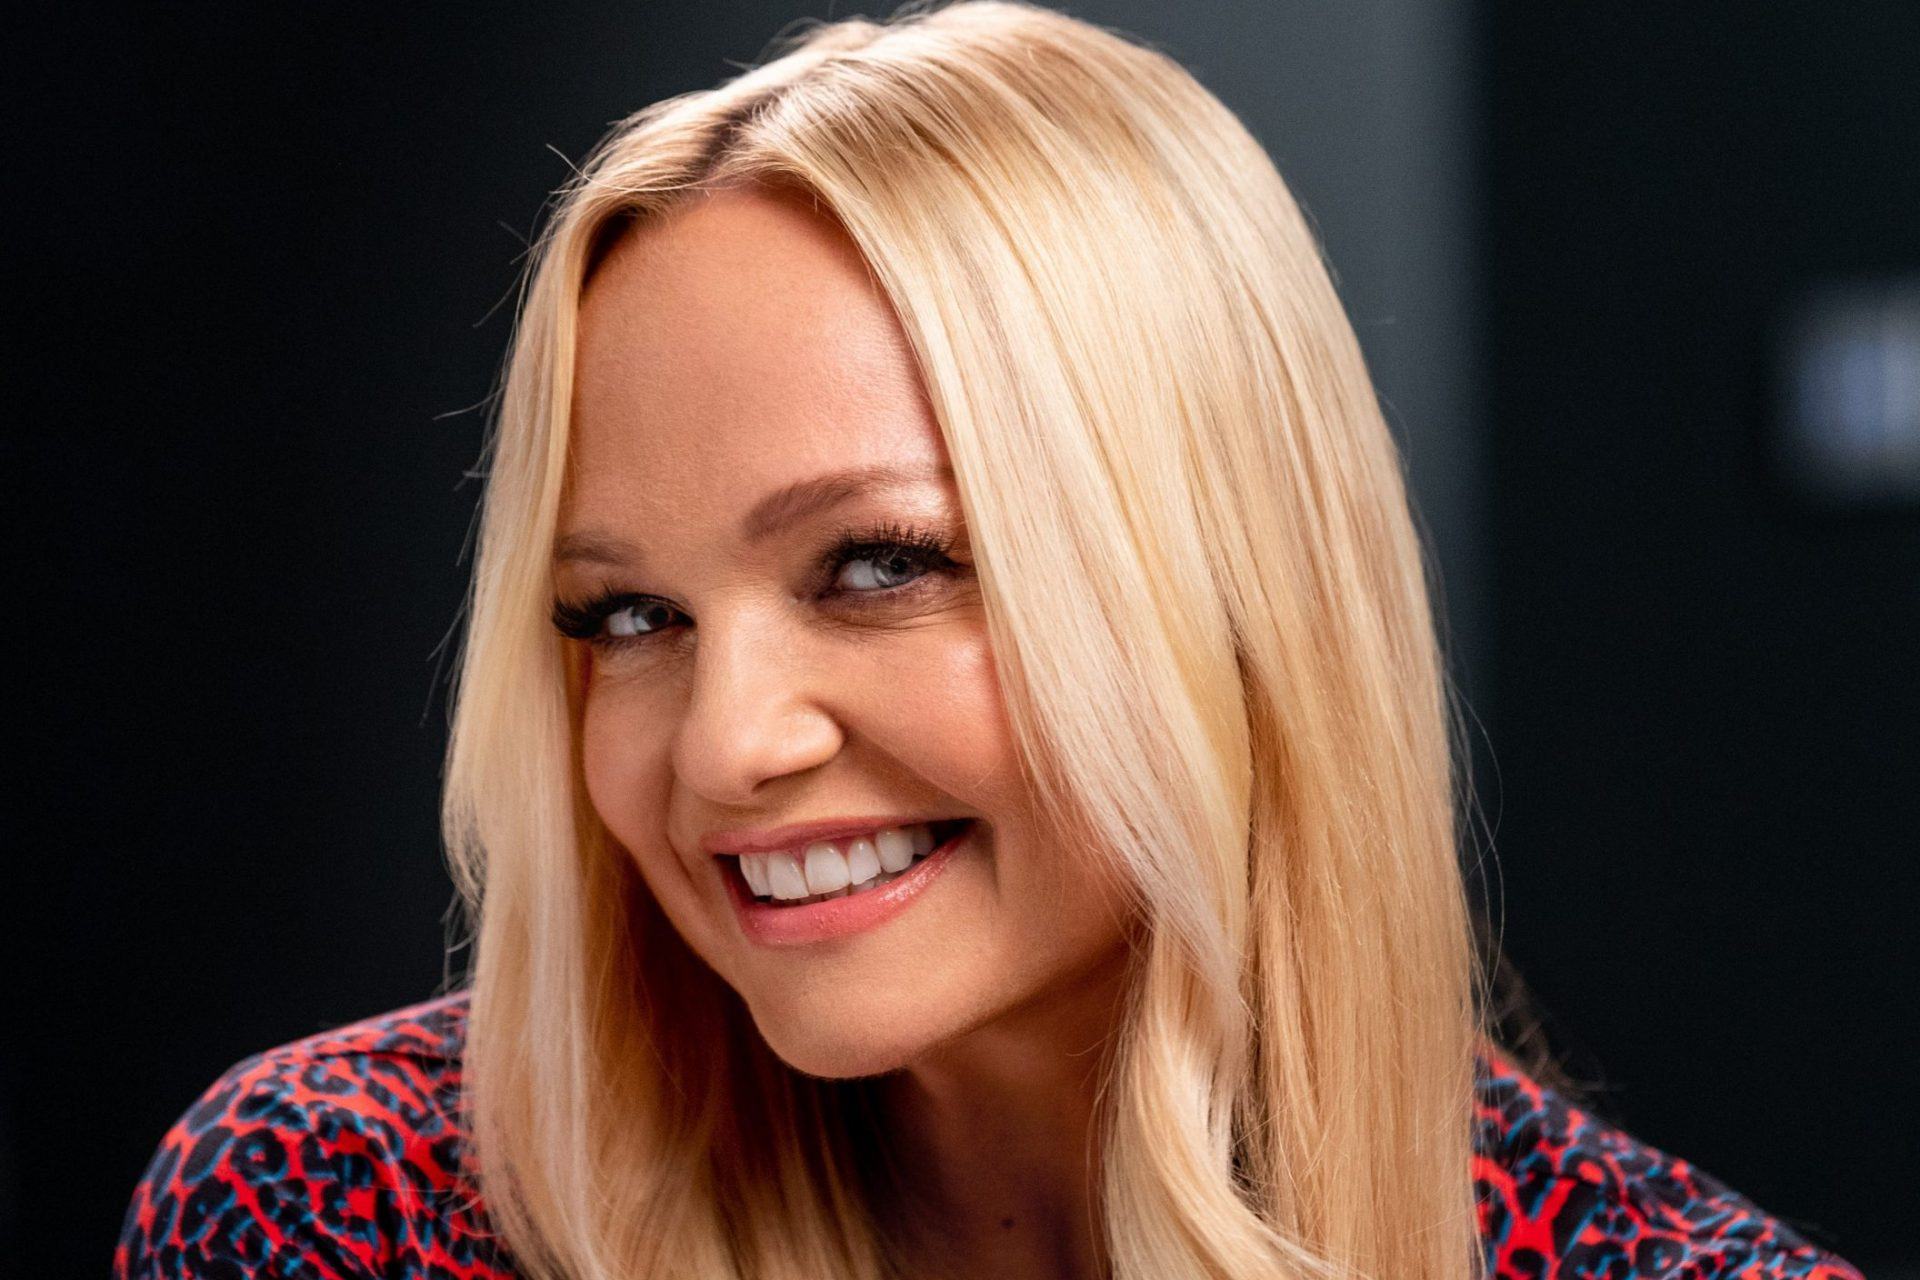 Emma Bunton portrait - Digital Parenting